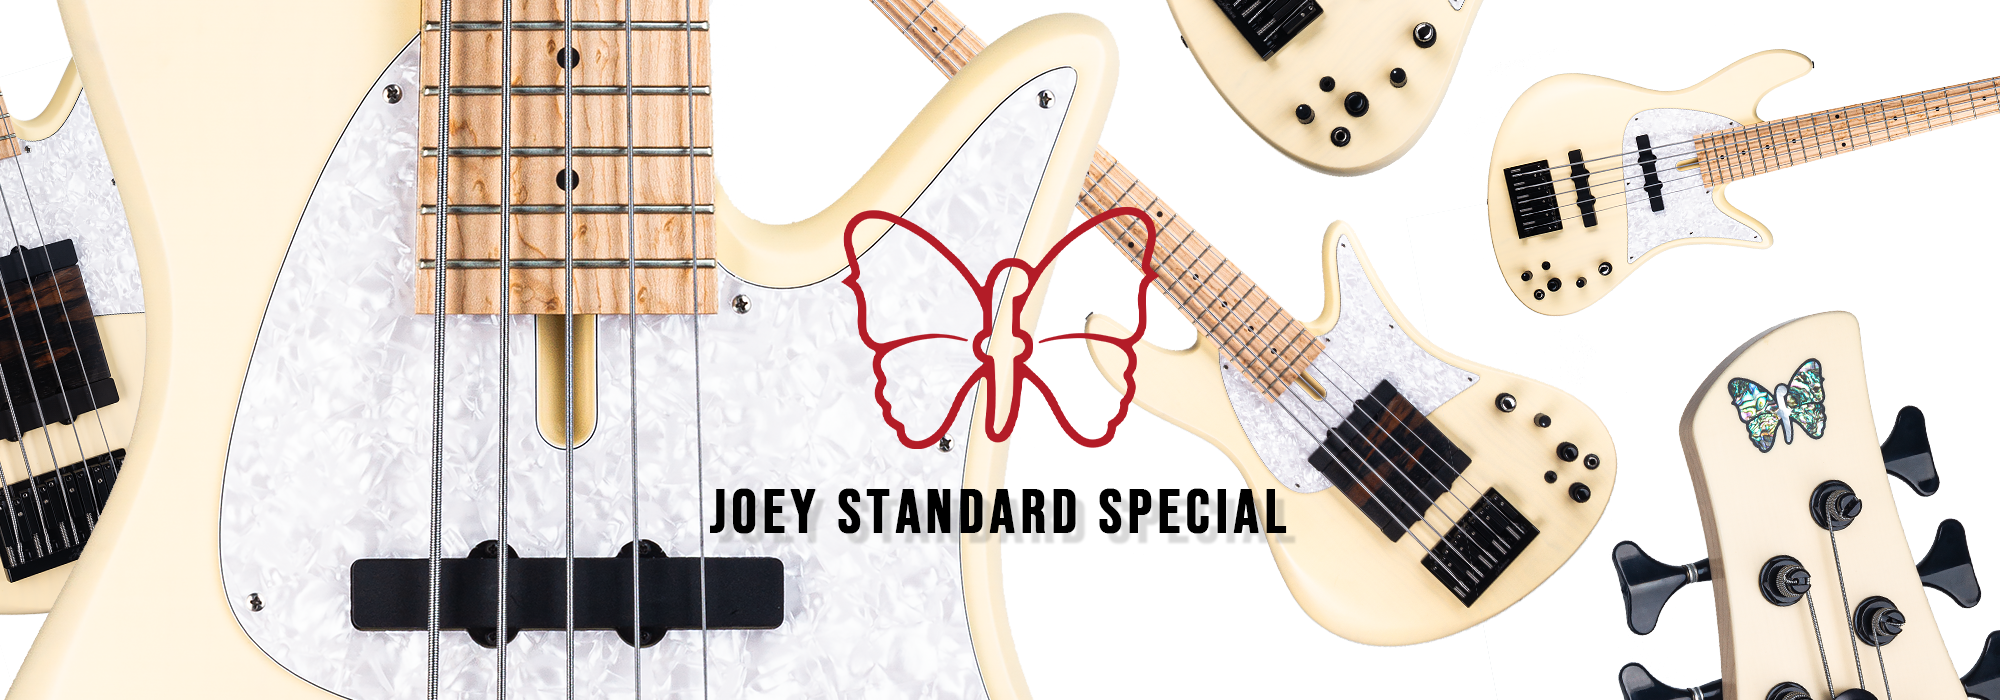 Joey Standard Special 5-String Guitar Banner